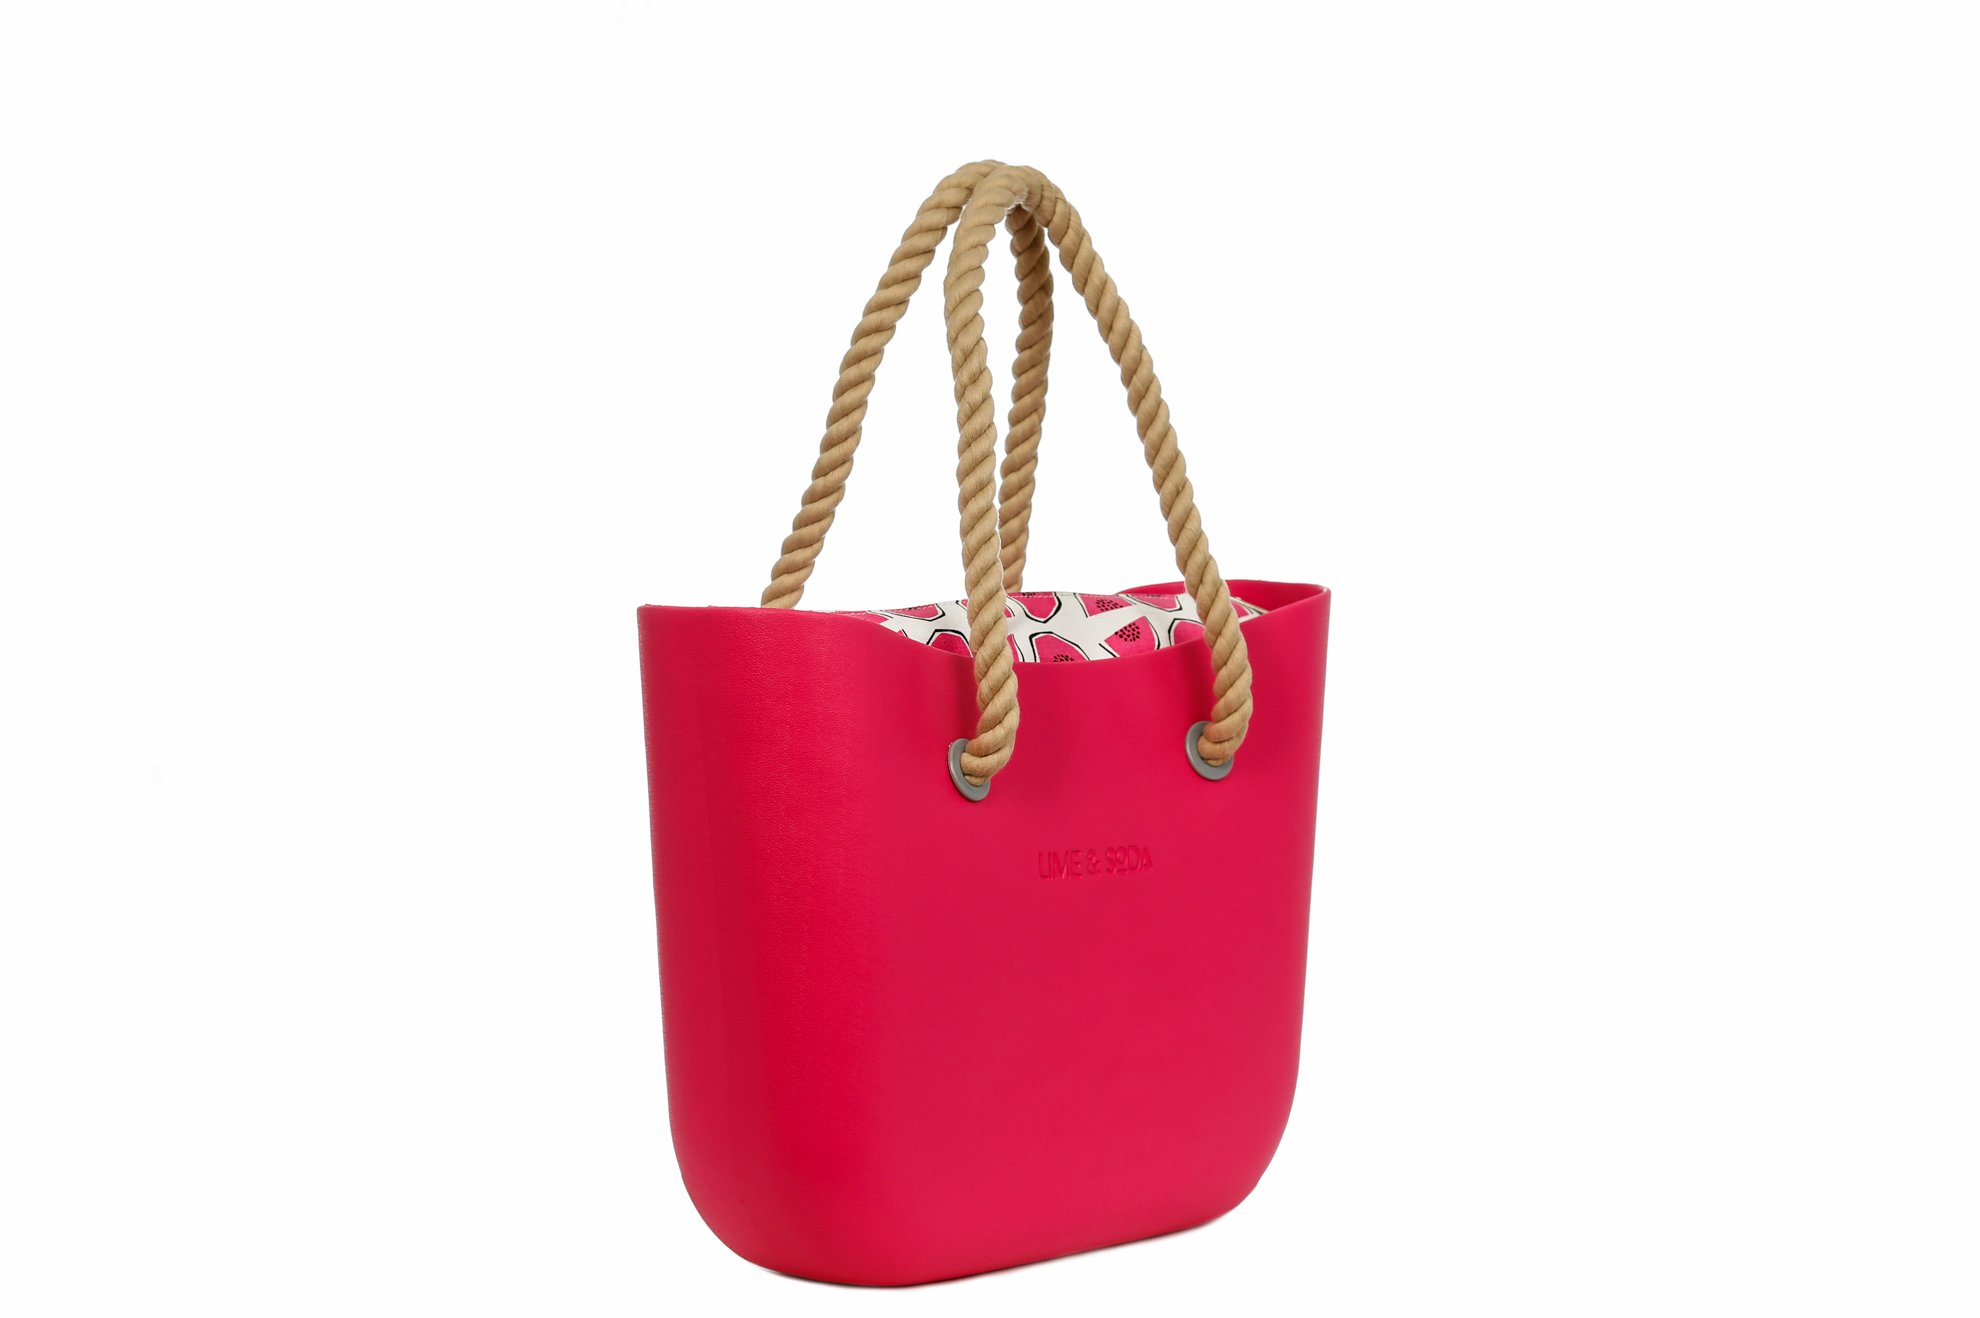 Lime & Soda Women's Fashion Eva Handbag - Rope Handles - Mix & Match to find your style (Fuchsia Special)